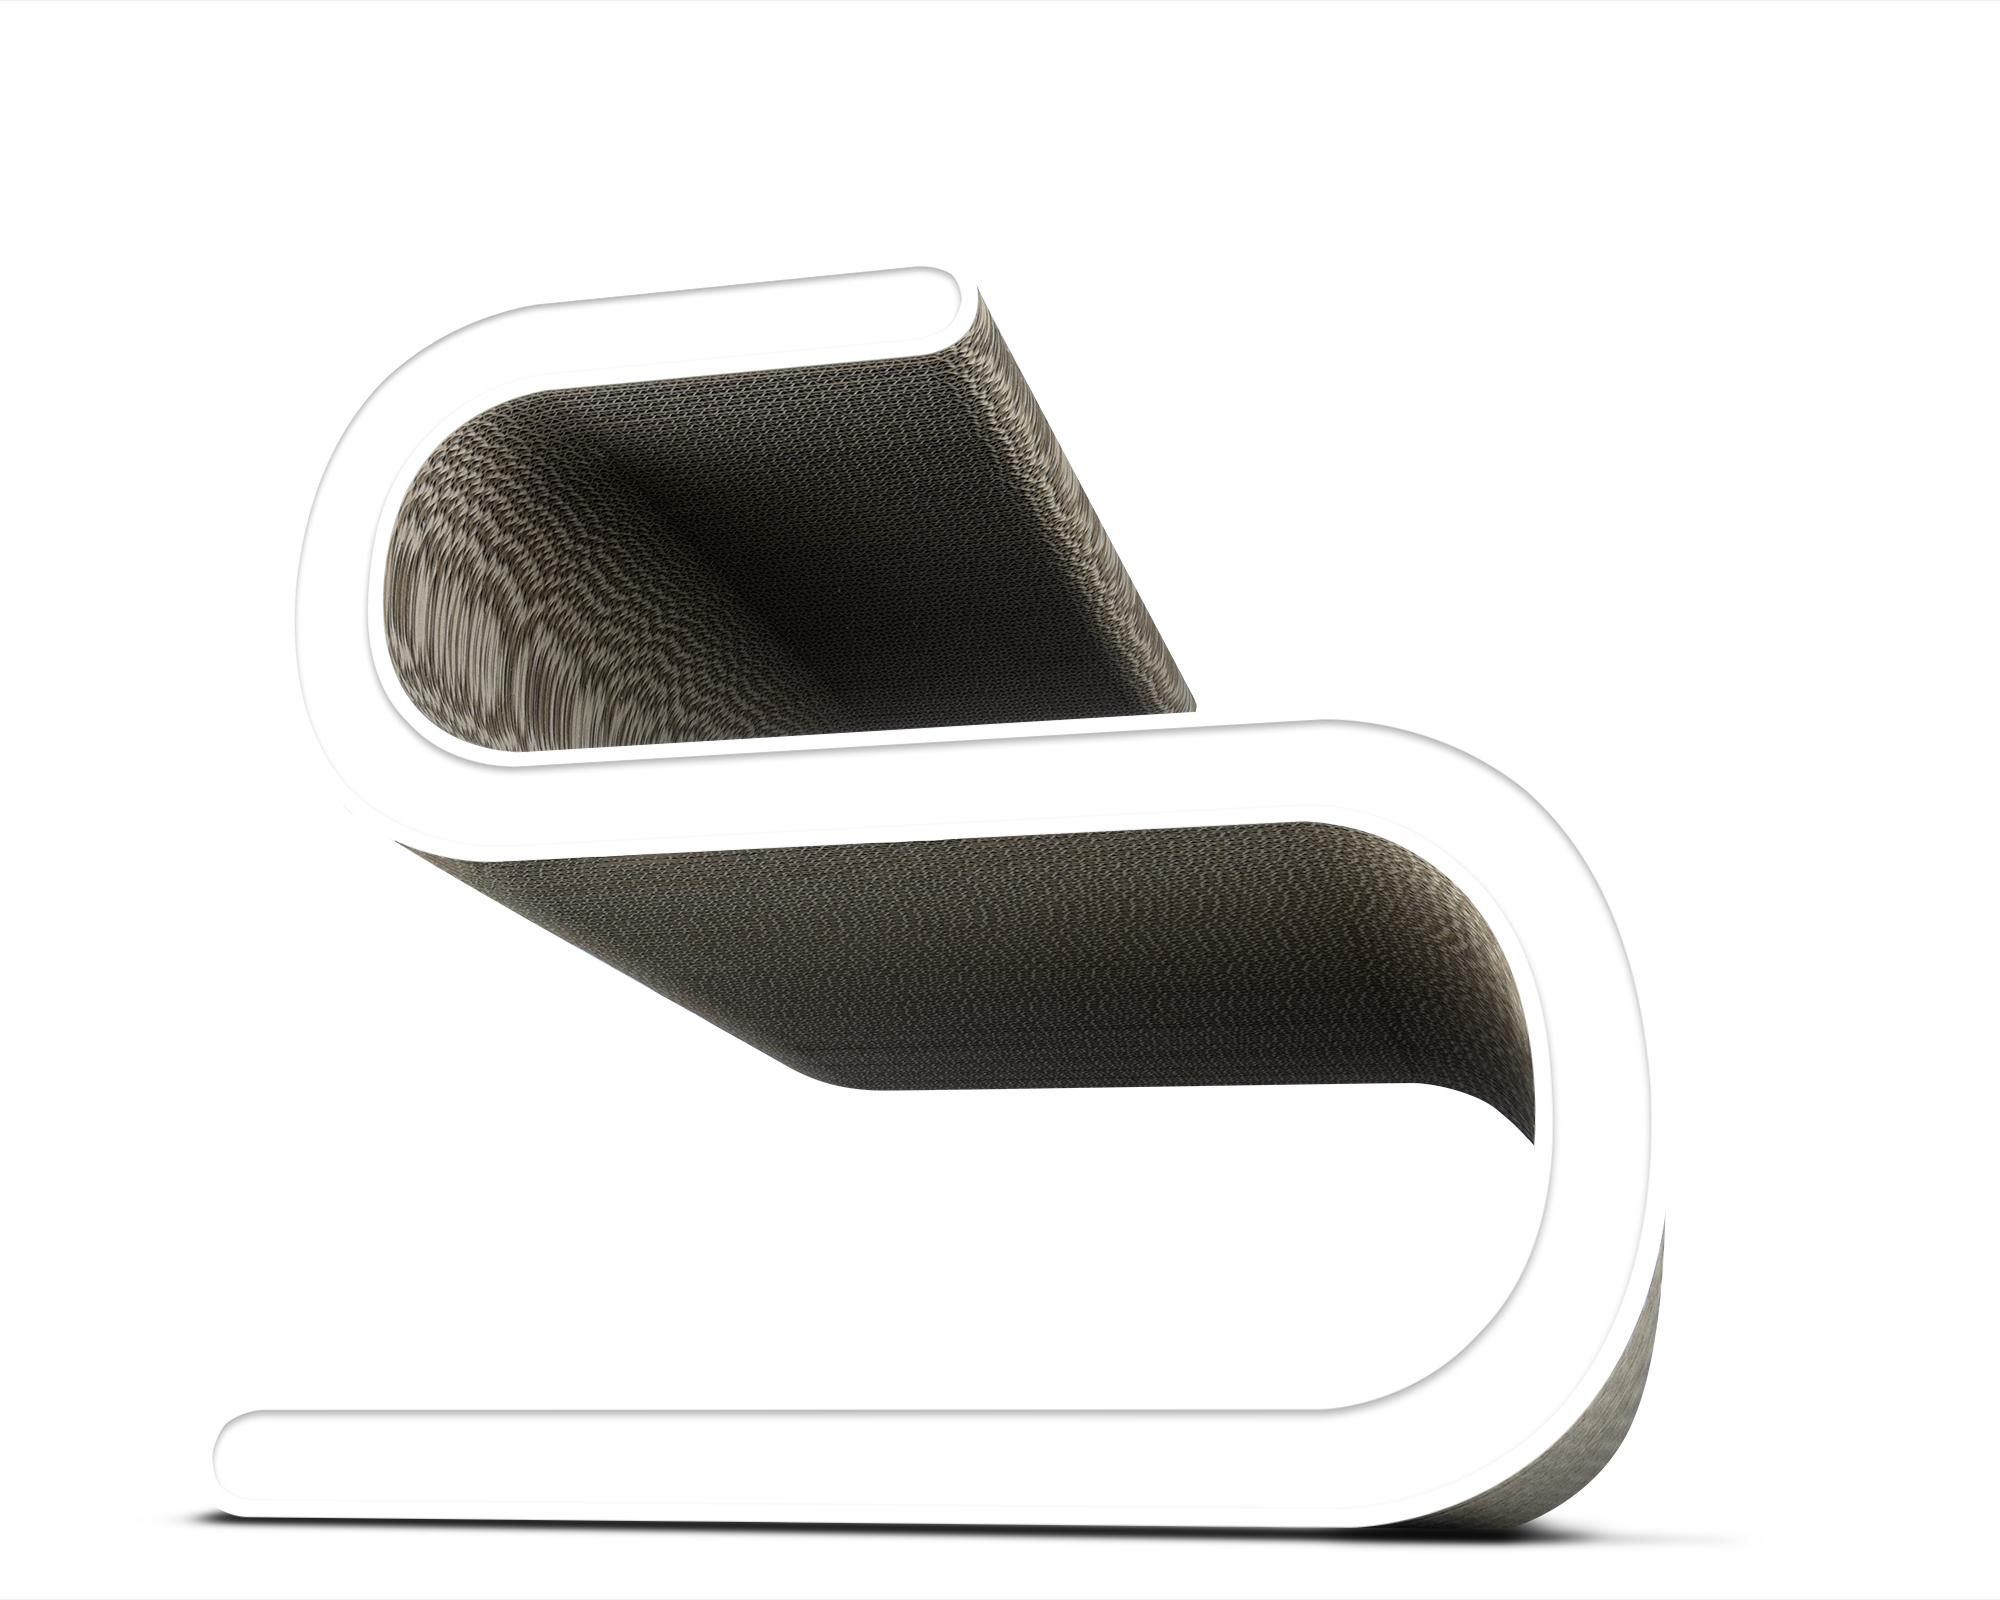 Ligne S design cat furniture